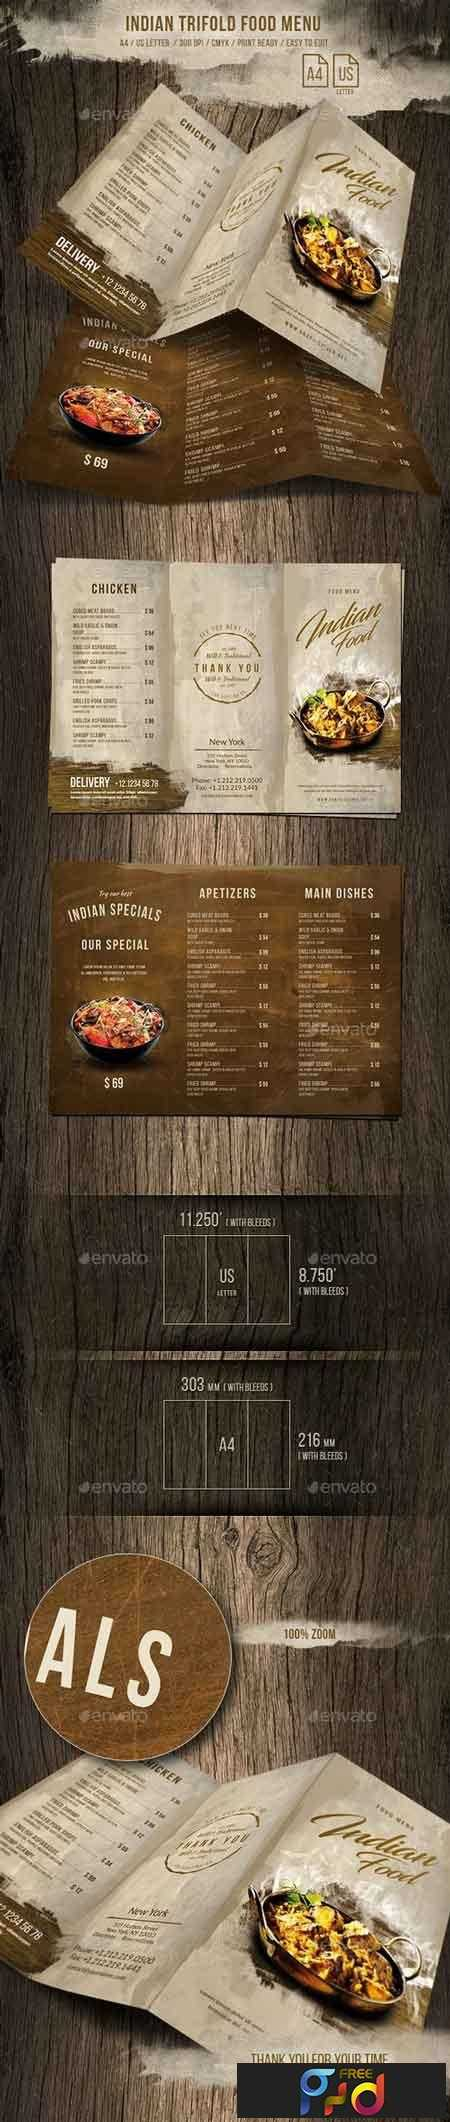 1812167 Indian A4 and US Letter Trifold Food Menu 20698642 1